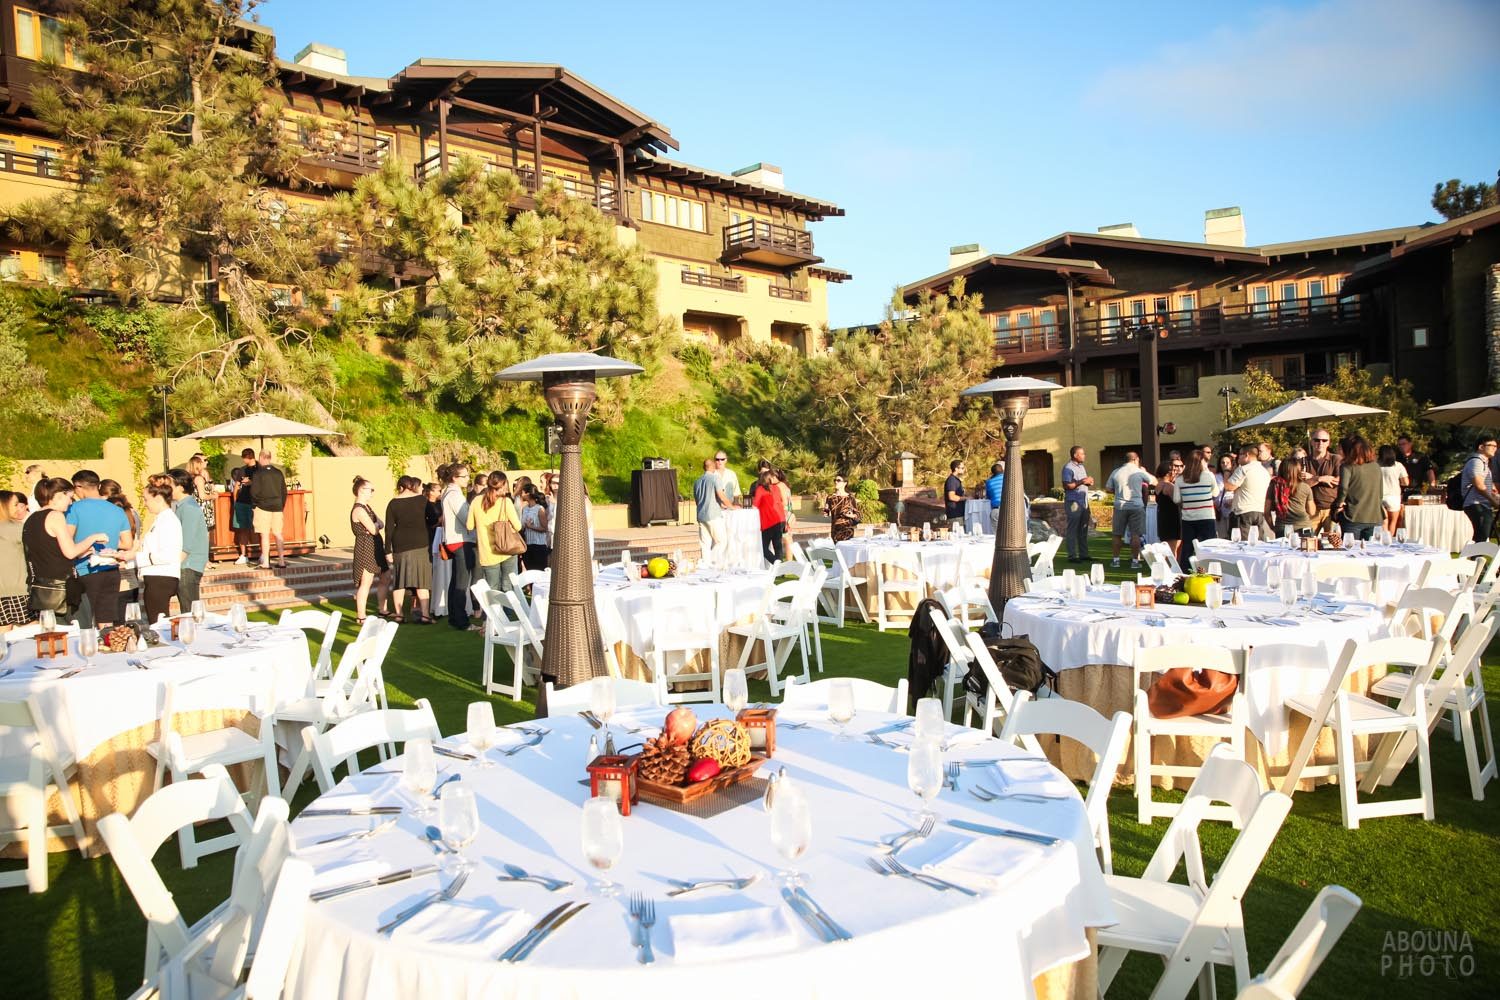 Cope Health Solutions Corporate Event Photography At The Lodge Torrey Pines La Jolla San Go Photographer Abounaphoto